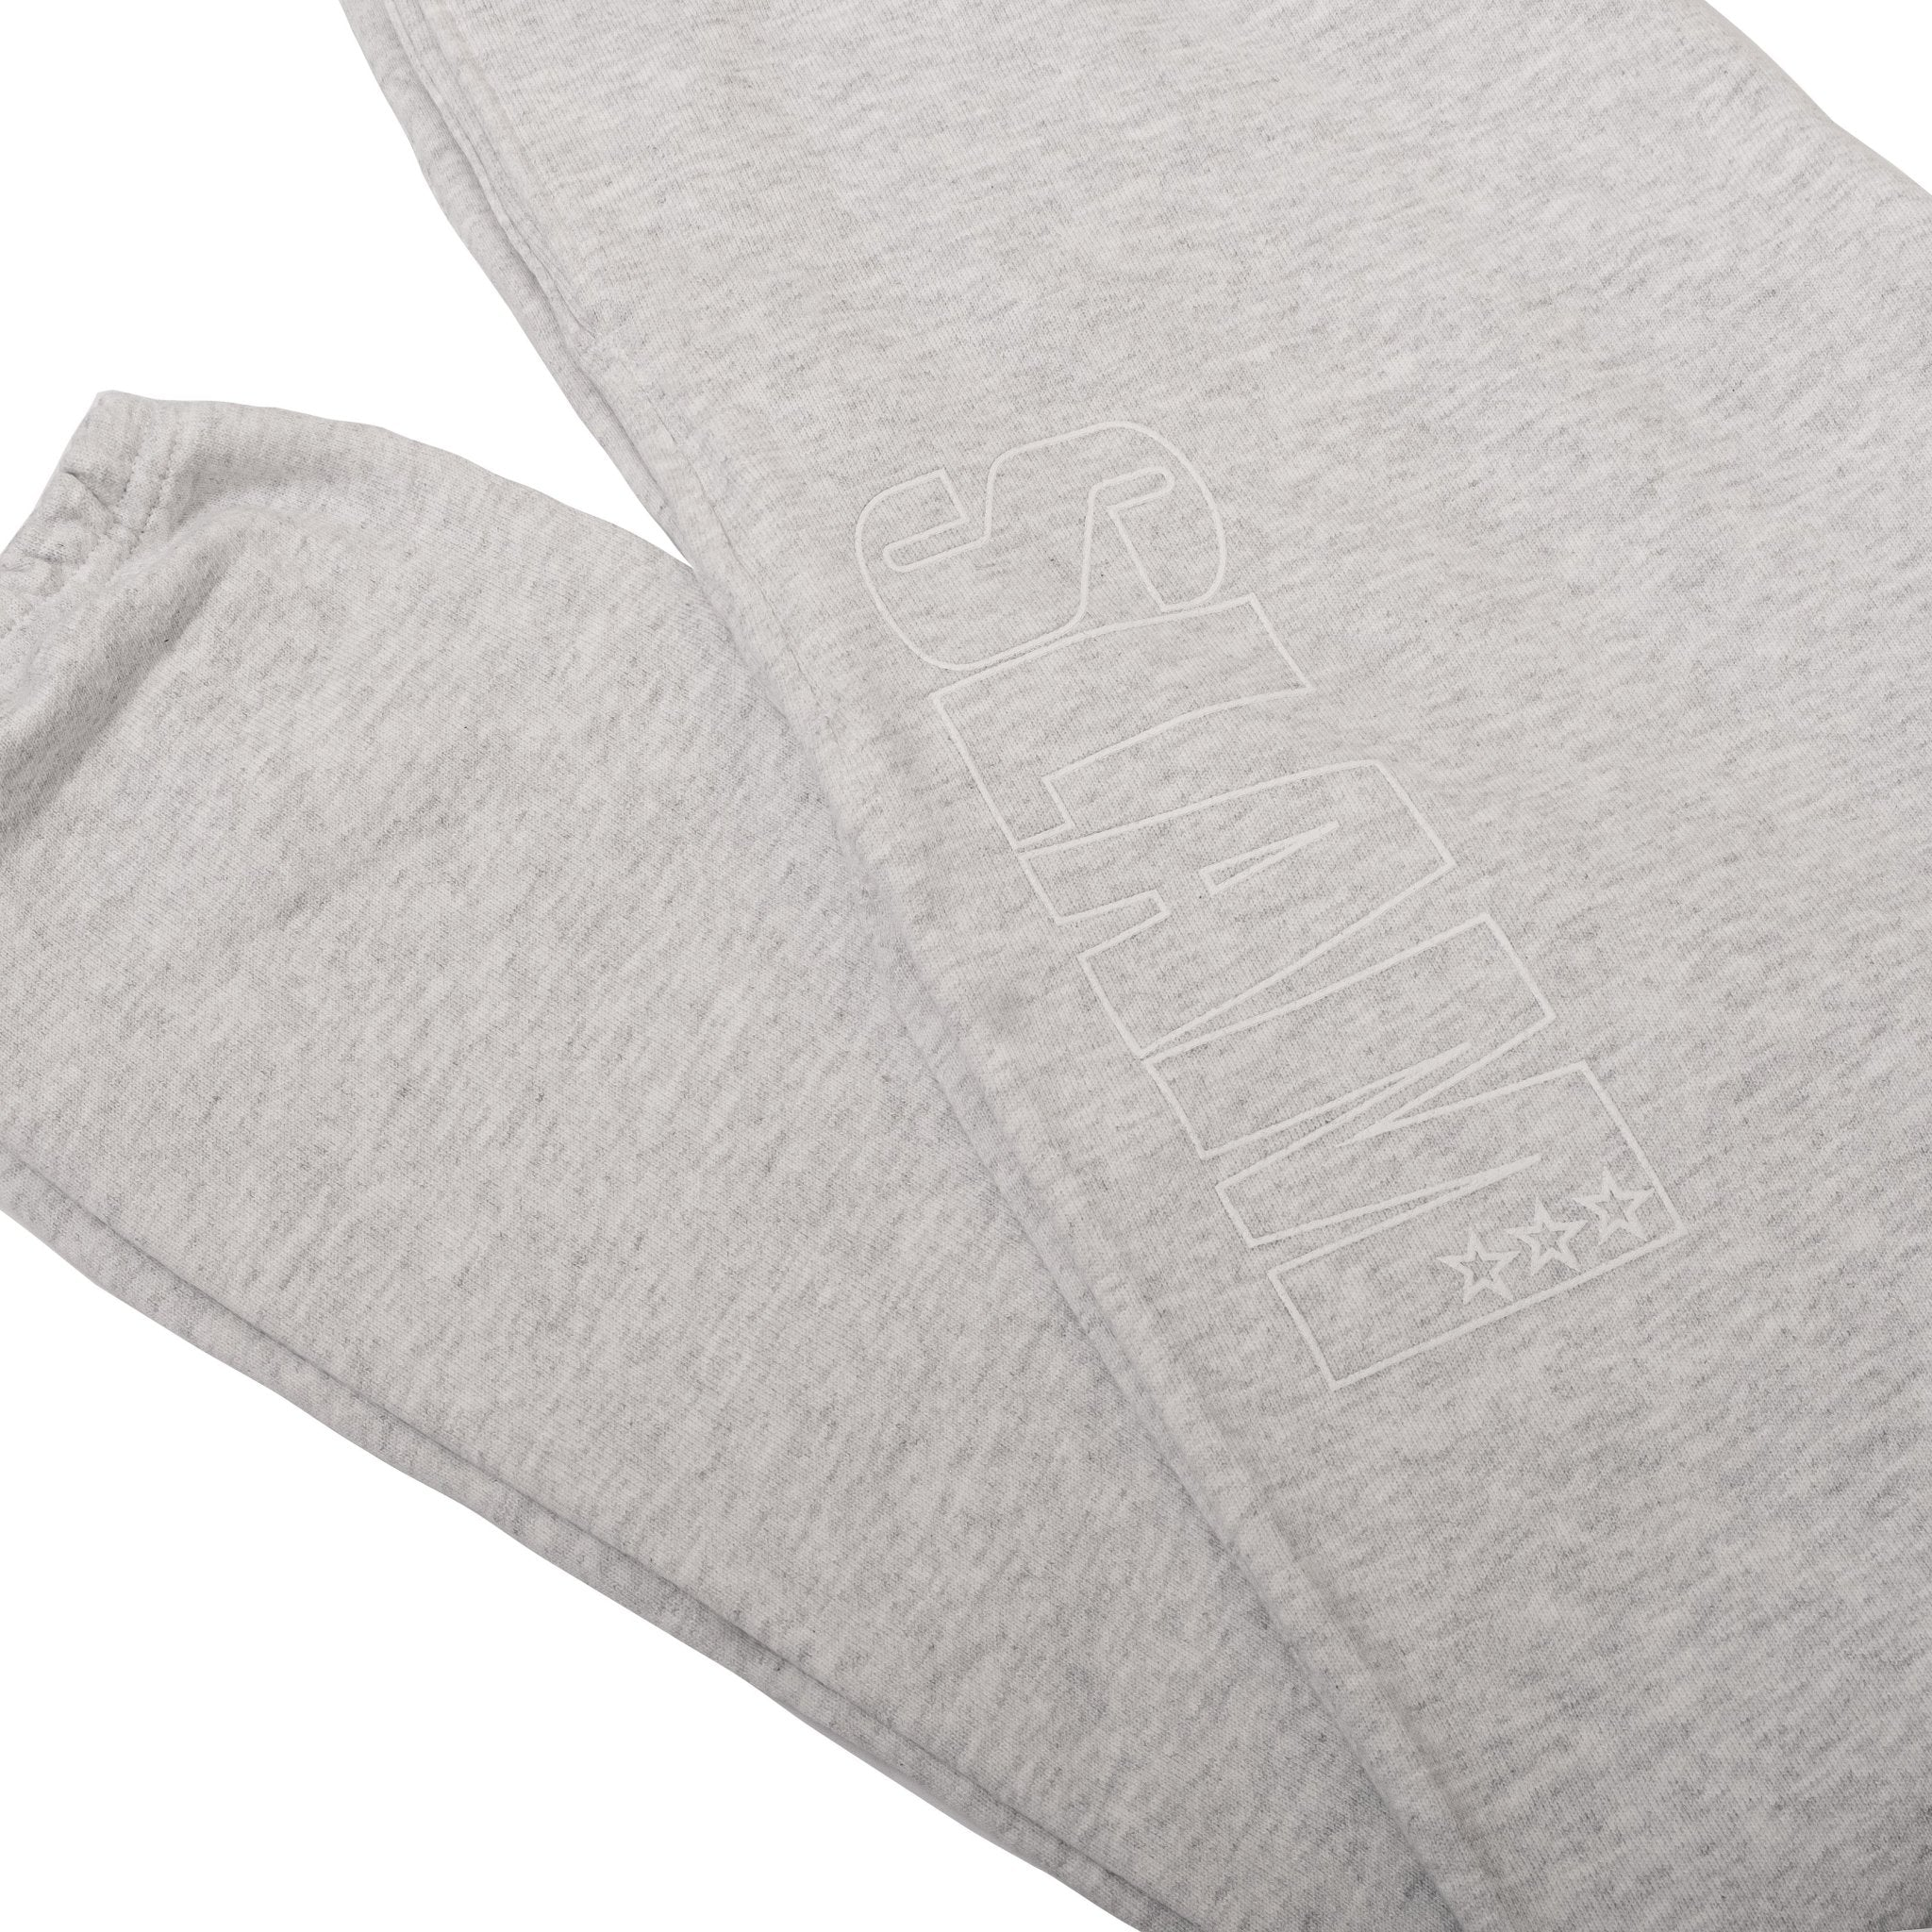 SLAM Outline Reverse Weave Sweatpants - SLAM